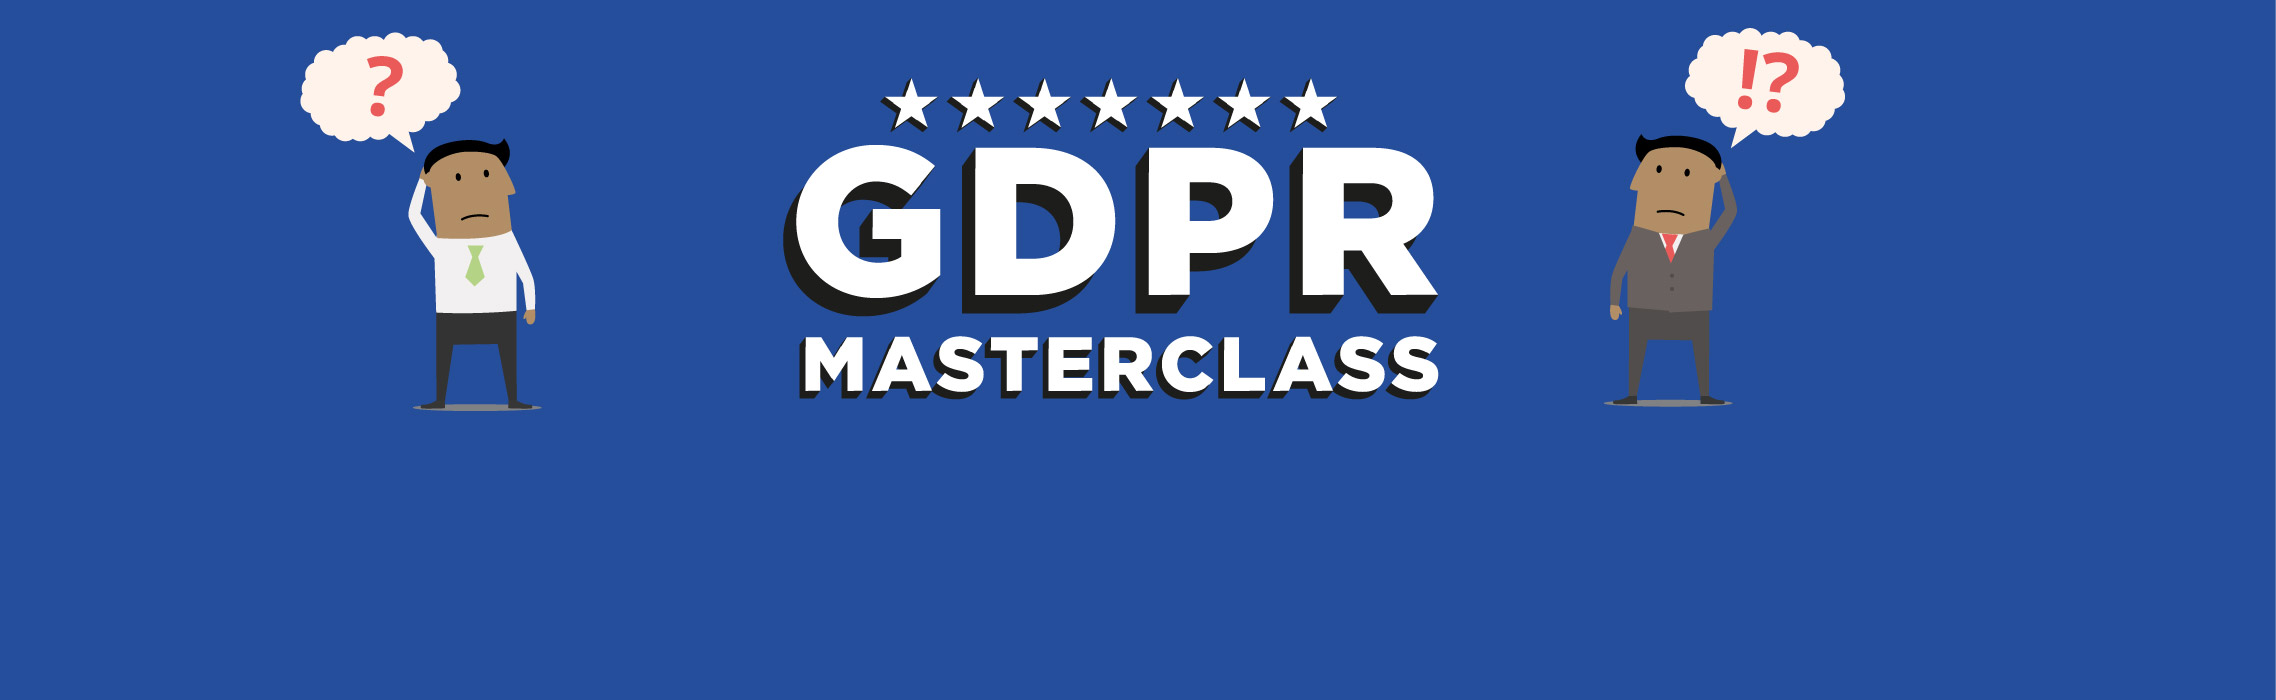 What Is GDPR? A Quick Overview For Small Business